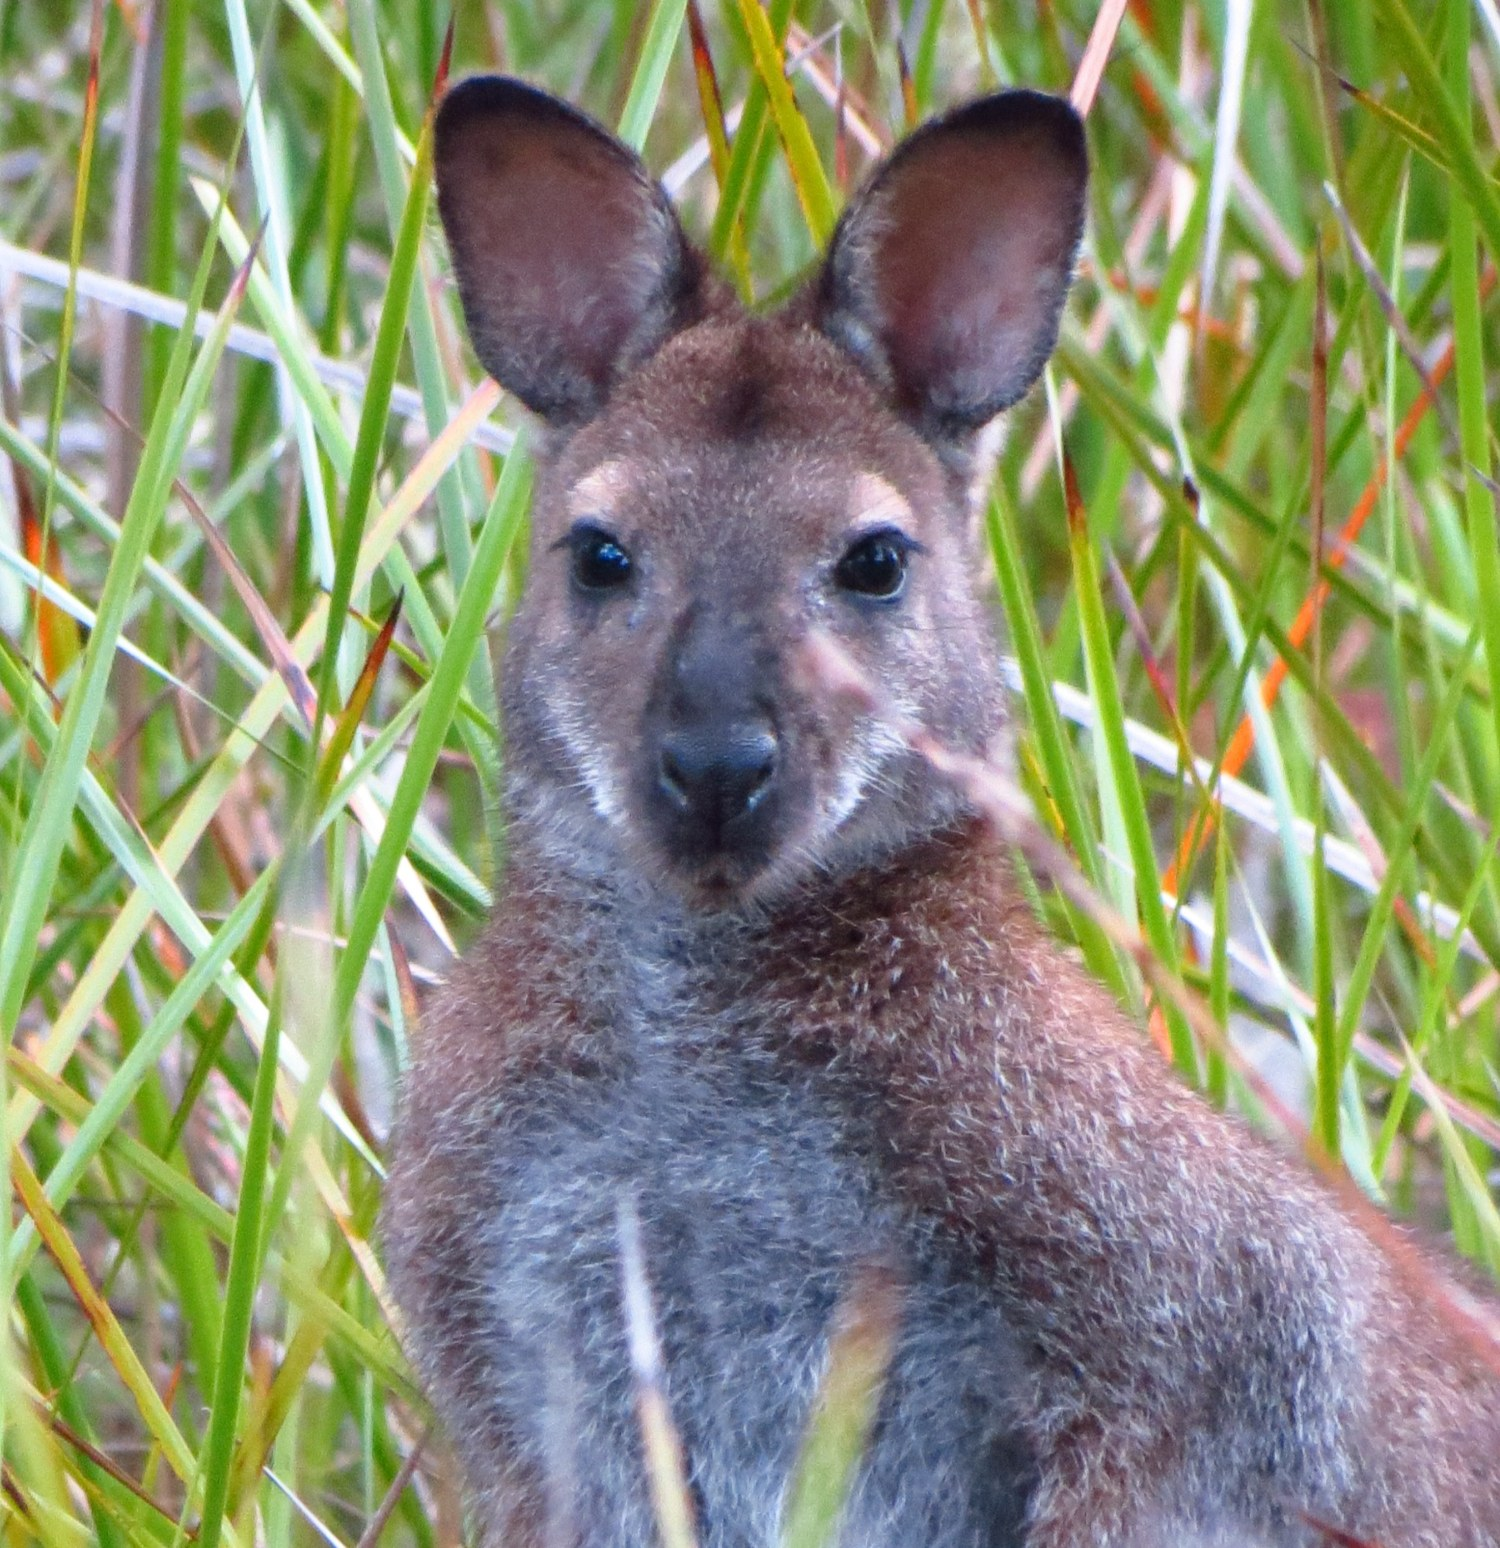 This is a Wallaby. The most obvious difference between a Wallaby and Kangaroo is size. Kanga